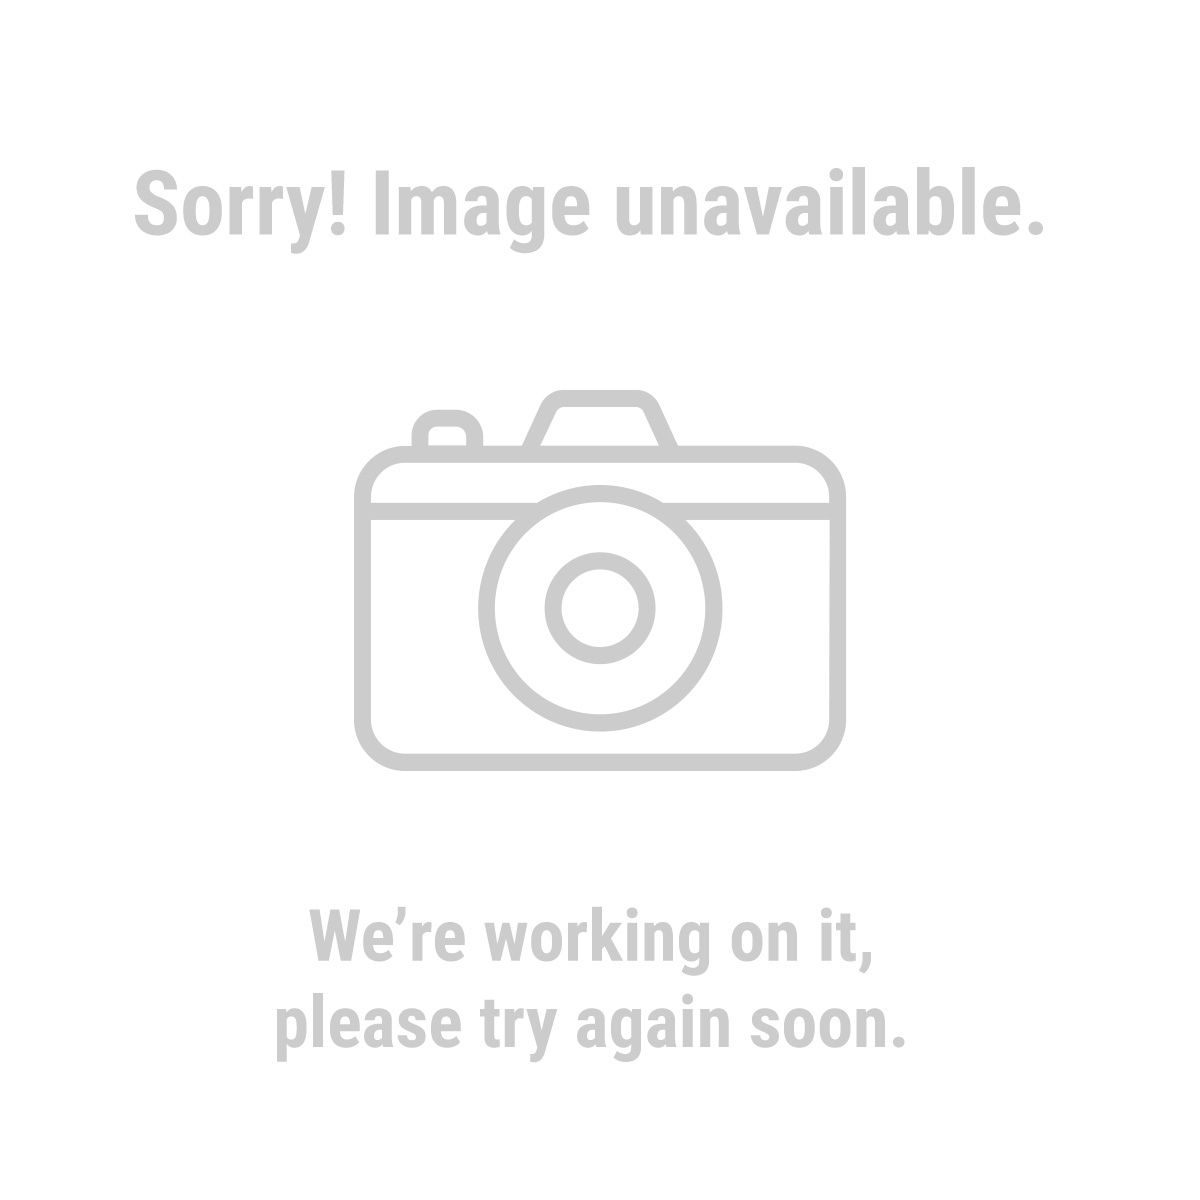 Hydraulic Bottle Jack : Ton hydraulic bottle jack